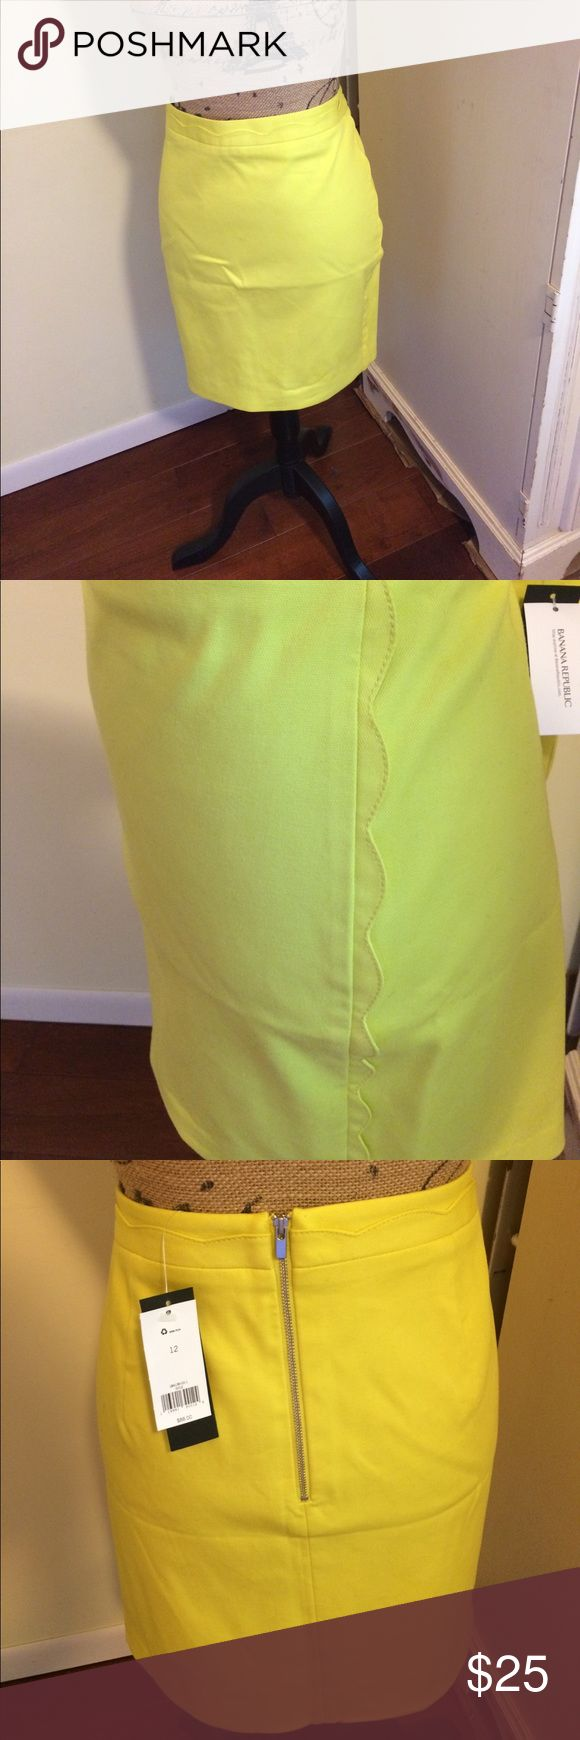 """Banana Republic chartreuse green Pencil Skirt My loss is your gain .  Re-poshing this NWT, cute, lined, summer piece. Size 12, waist measurement is 17.5"""", hip measurement is 20.5"""", length measurement is 18"""". Detailed on both sides with scalped edging. Banana Republic Skirts Pencil"""